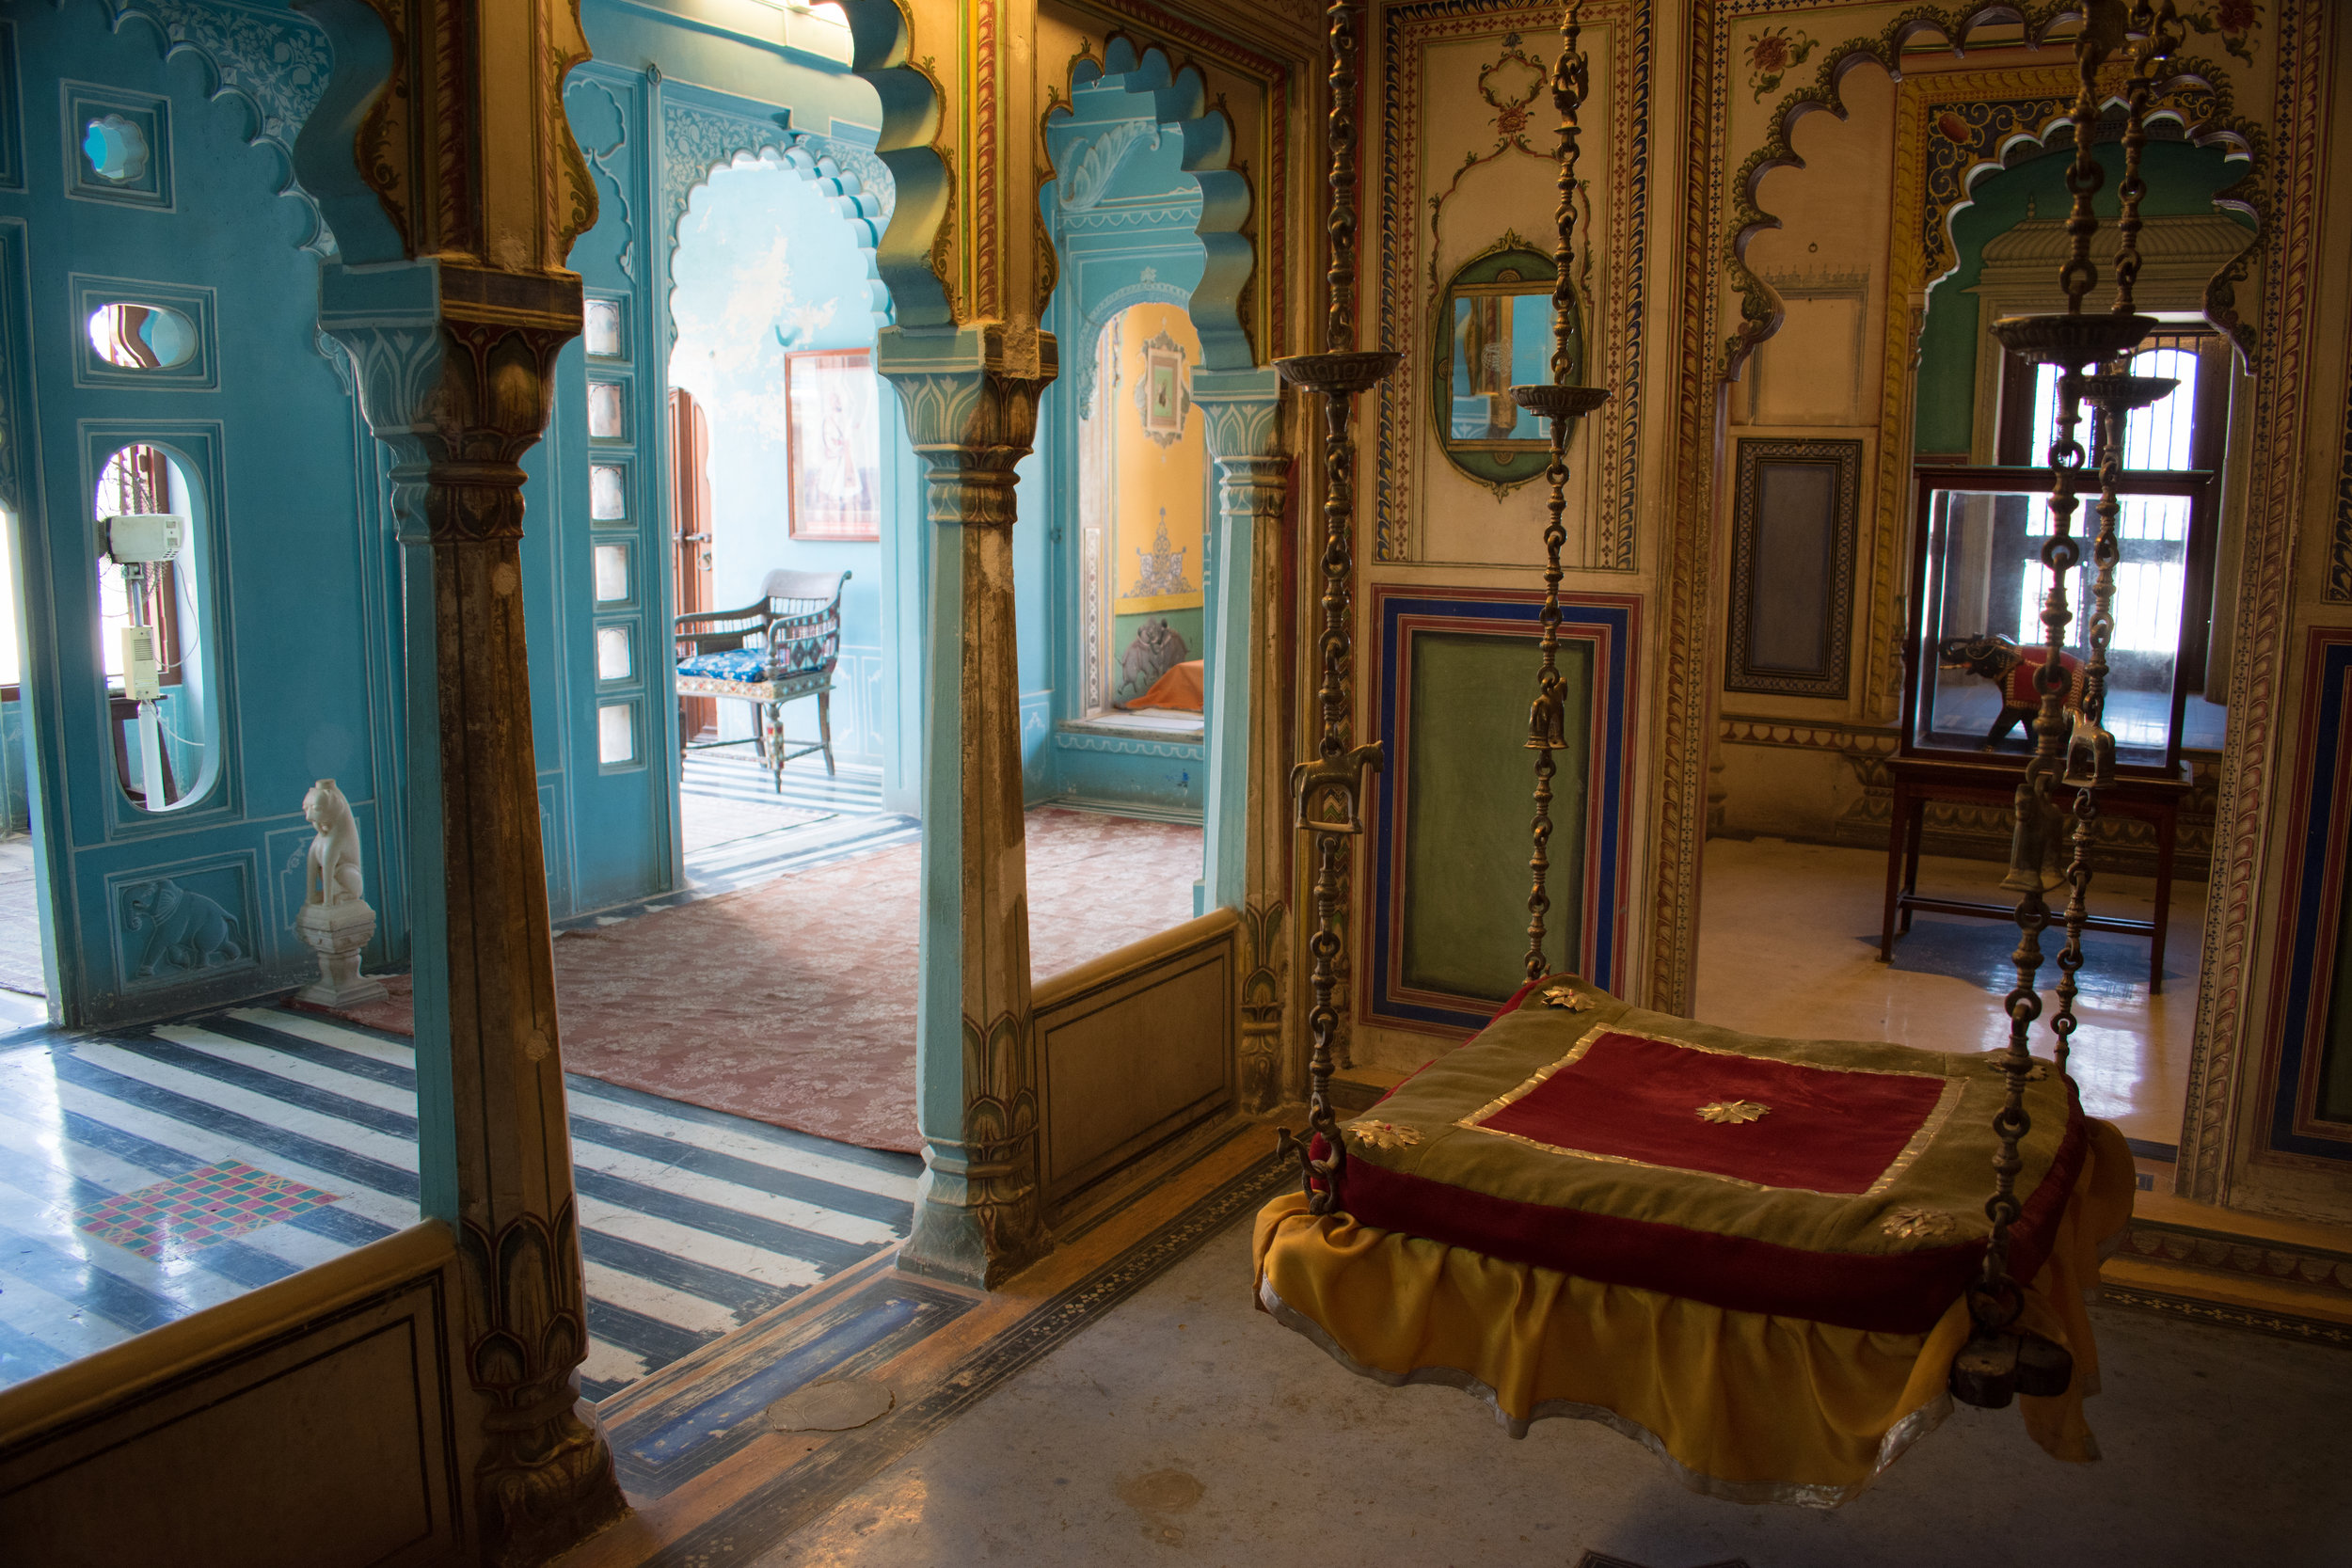 The City Palace Interior Decoration In Udaipur, India